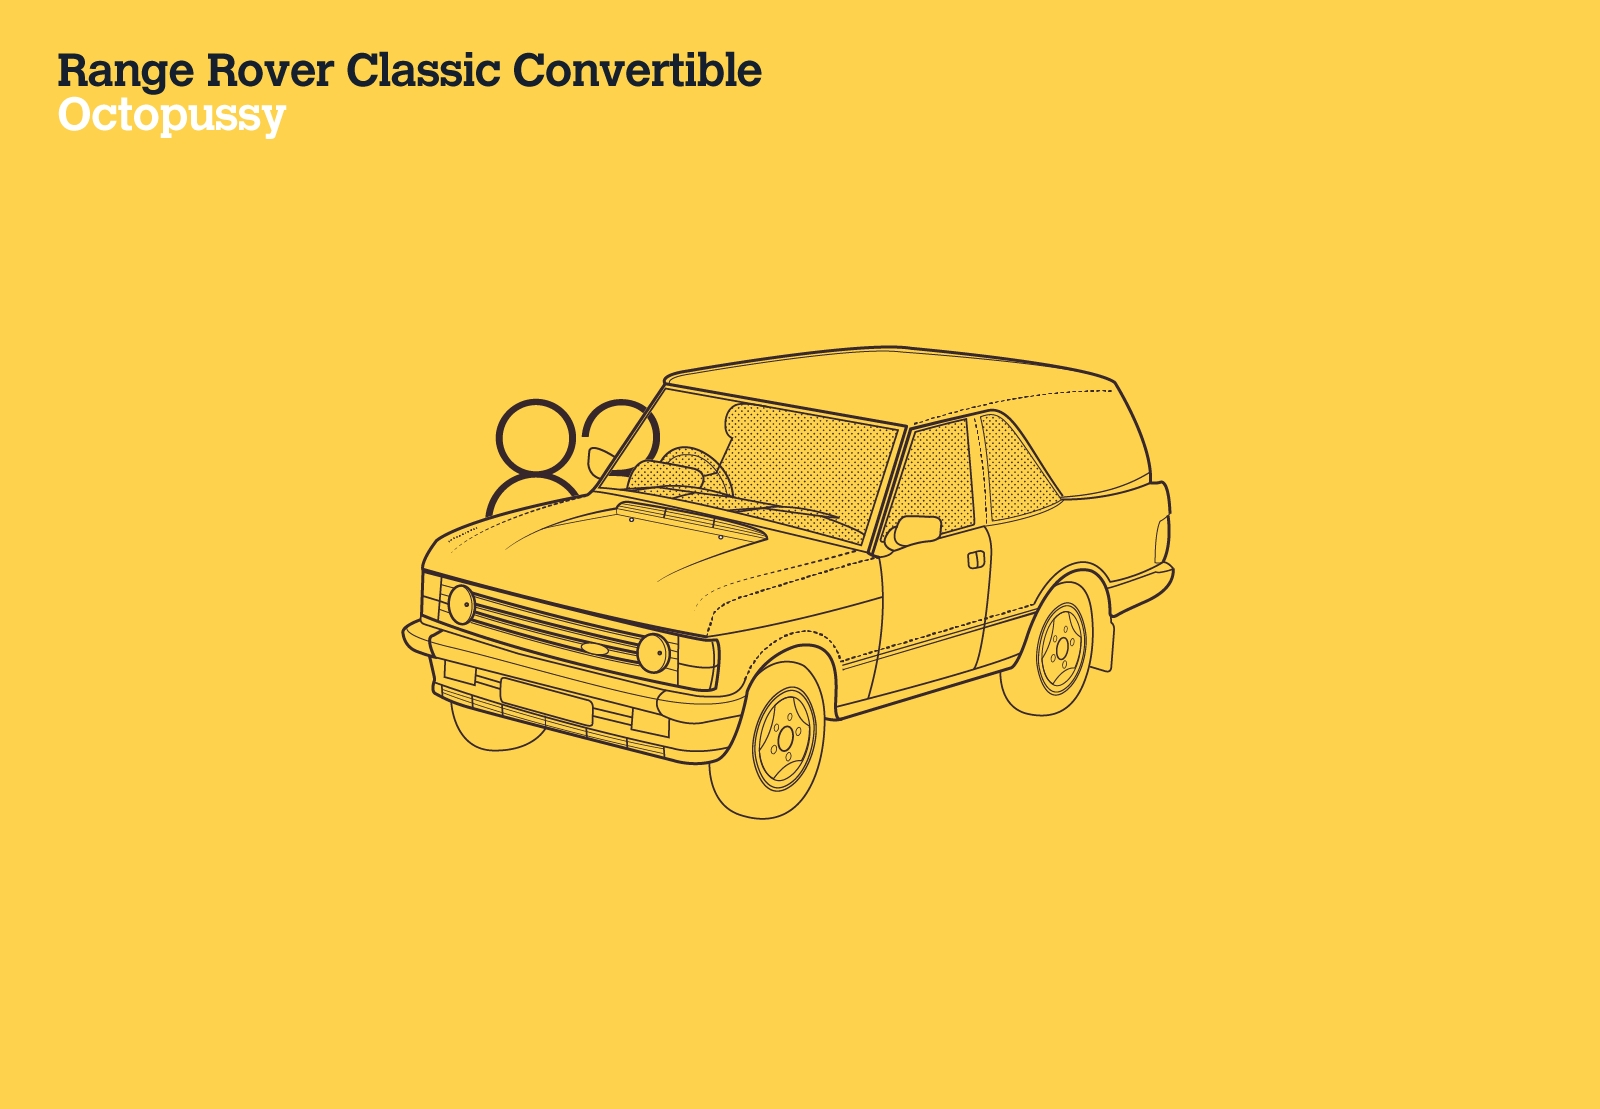 Range Rover Classic Convertible Octopussy